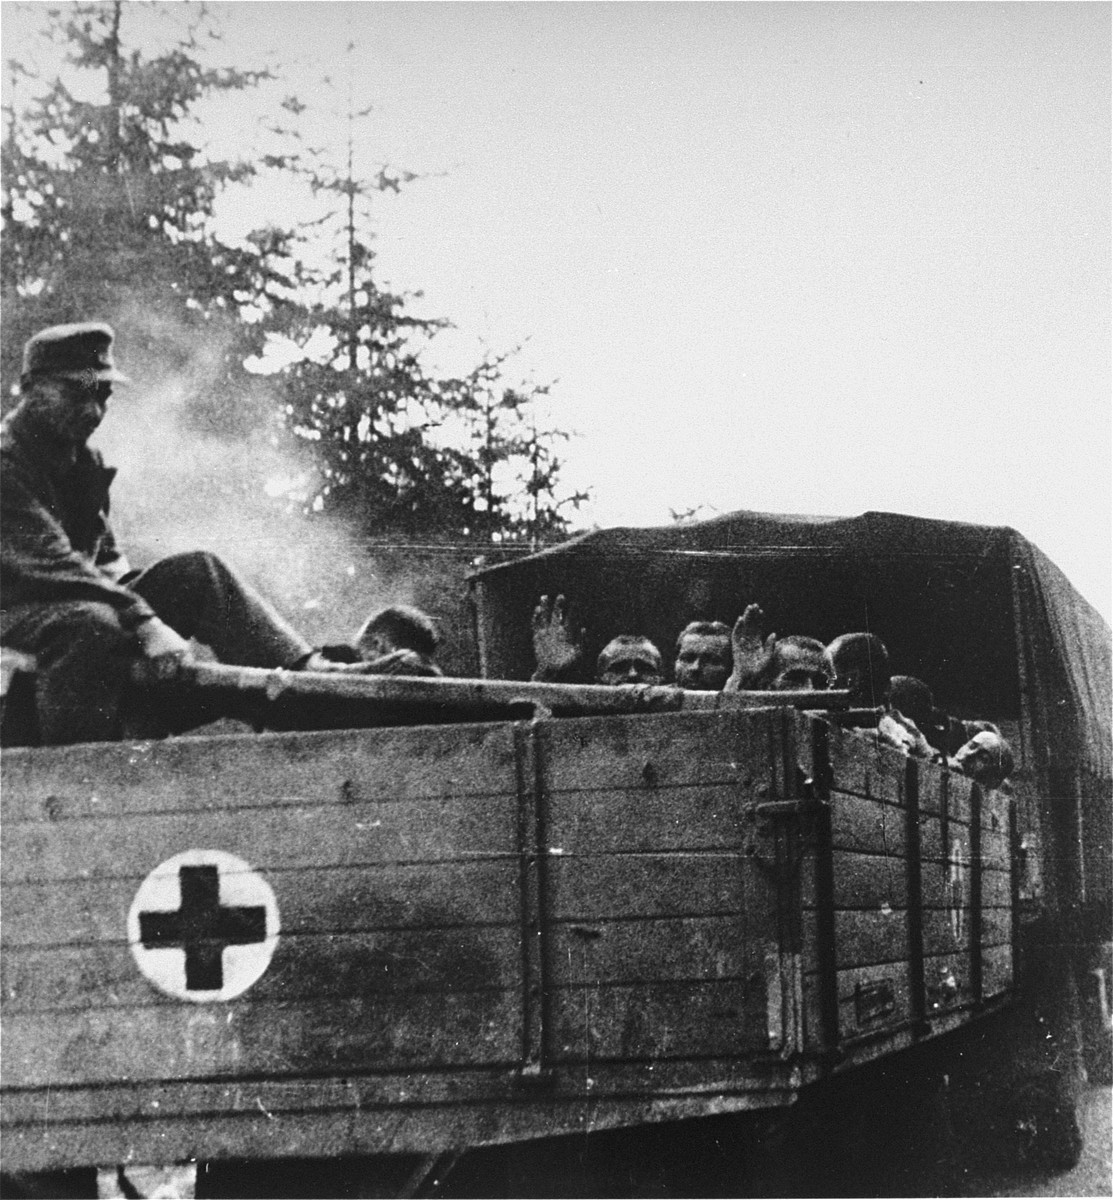 Survivors from Ebensee are evacuated to the 139th Evacuation Hospital for medical treatment.